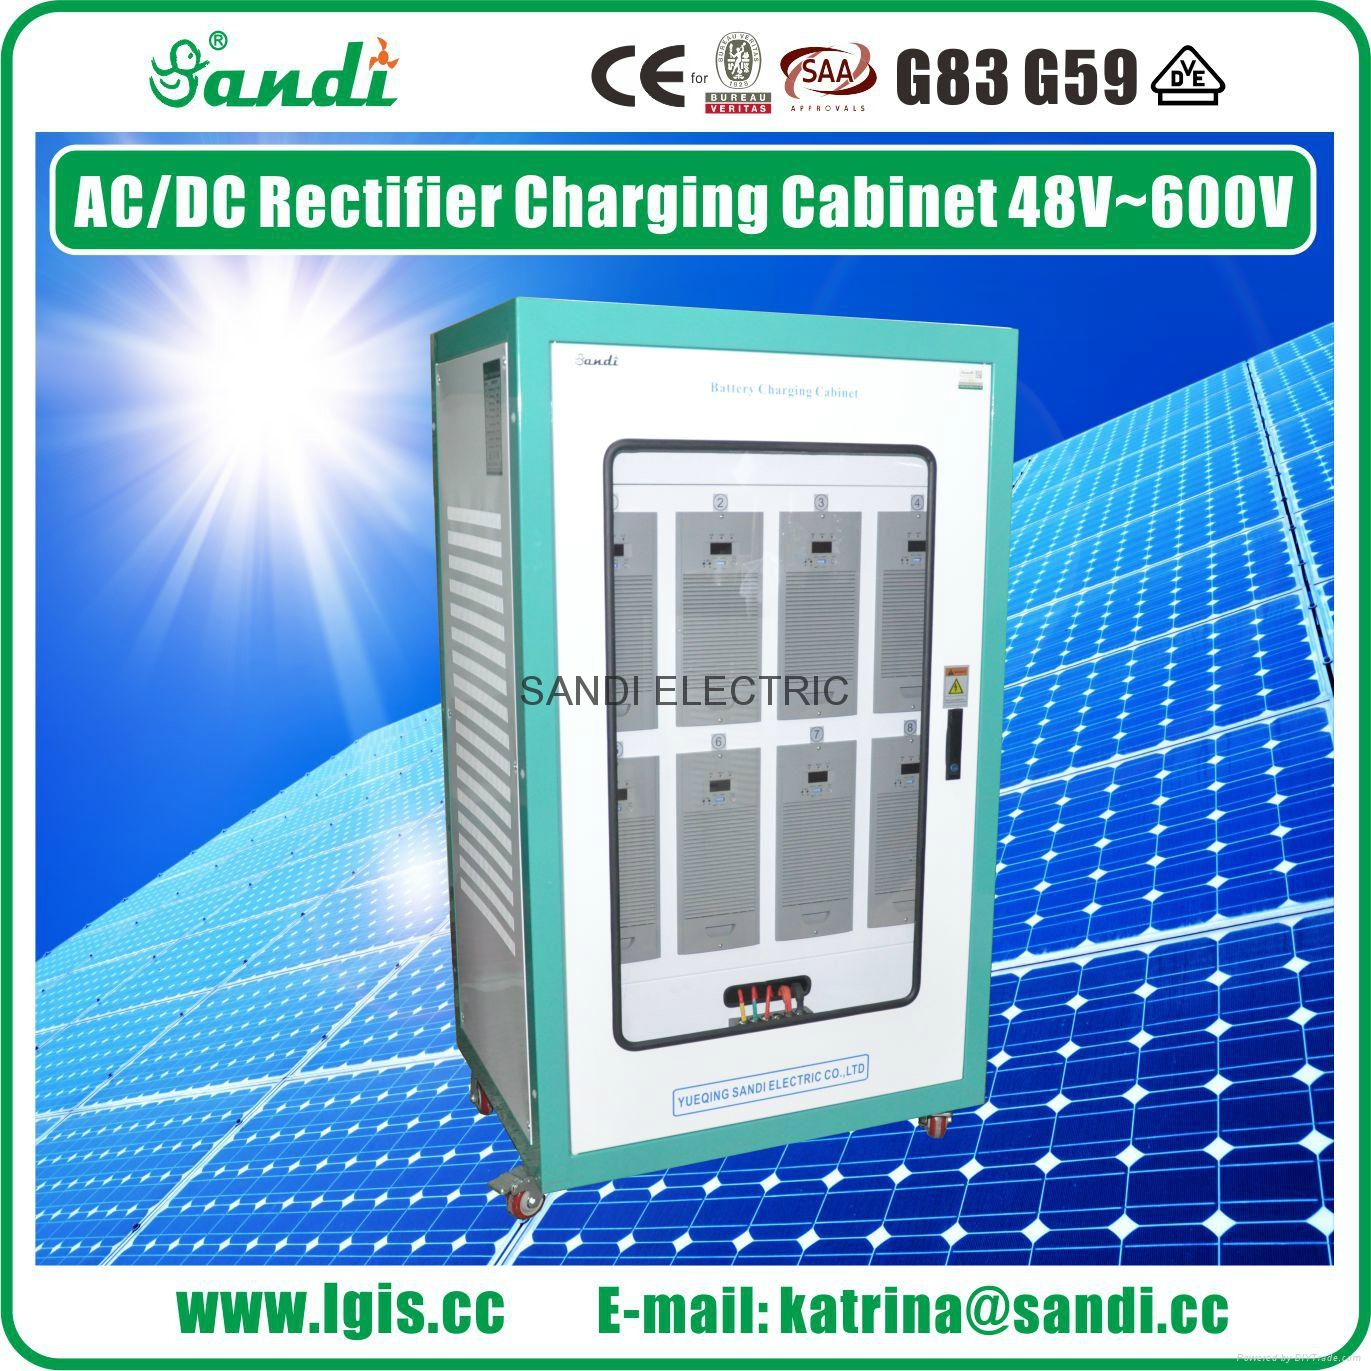 AC/DC Battery Charging Cabinet